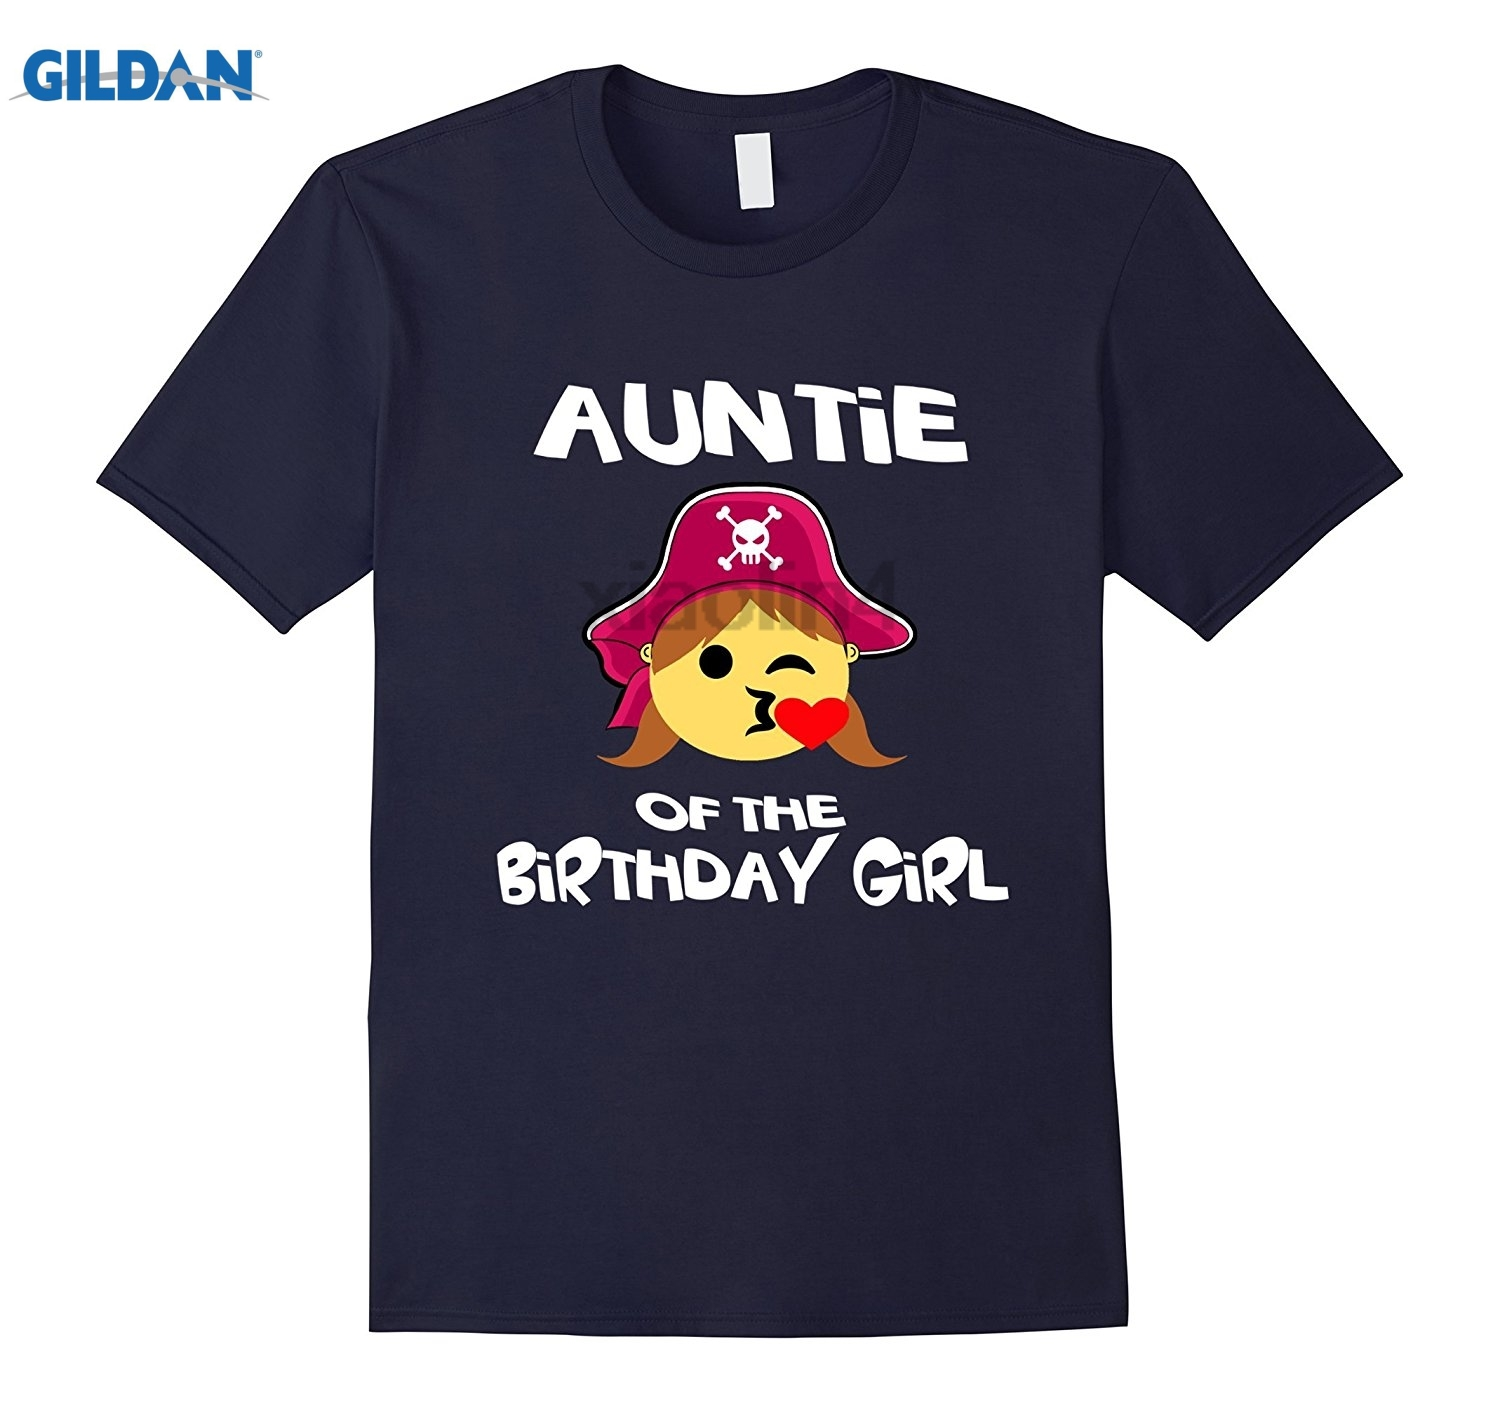 GILDAN Auntie of Birthday Girl Pirate Emoji T-Shirt Kiss Heart Tee Fun Design Custom Print Short Sleeve T-Shirt